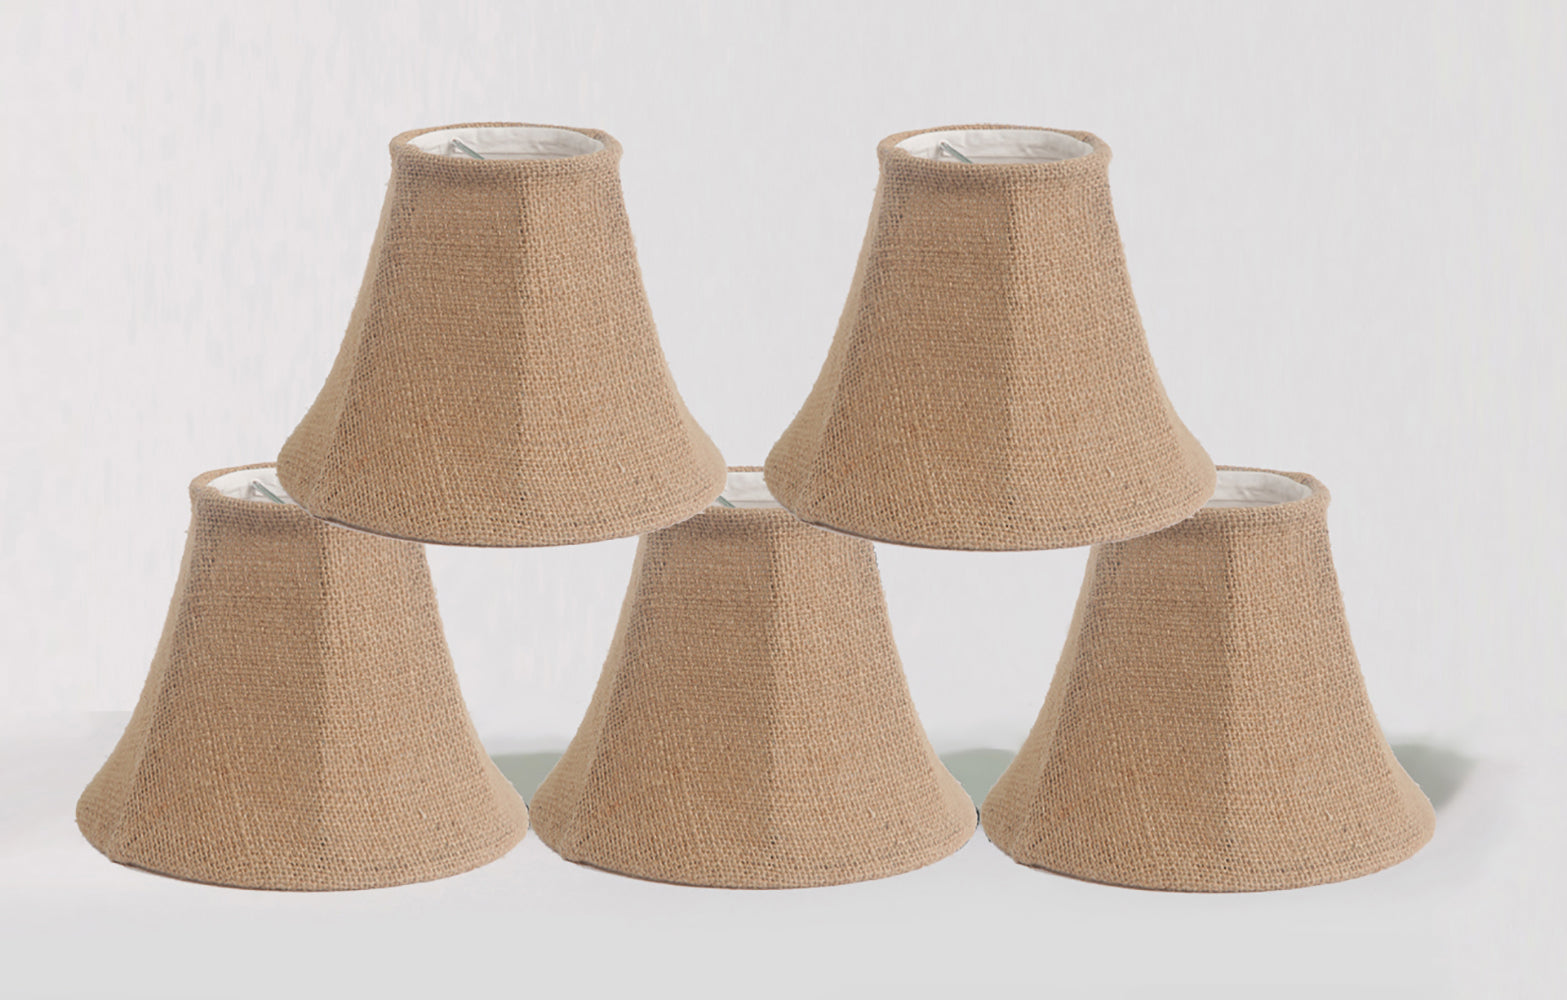 Burlap bell 6 inch chandelier lamp shade 5 colors urbanest burlap bell 6 inch chandelier lamp shade 5 colors arubaitofo Choice Image